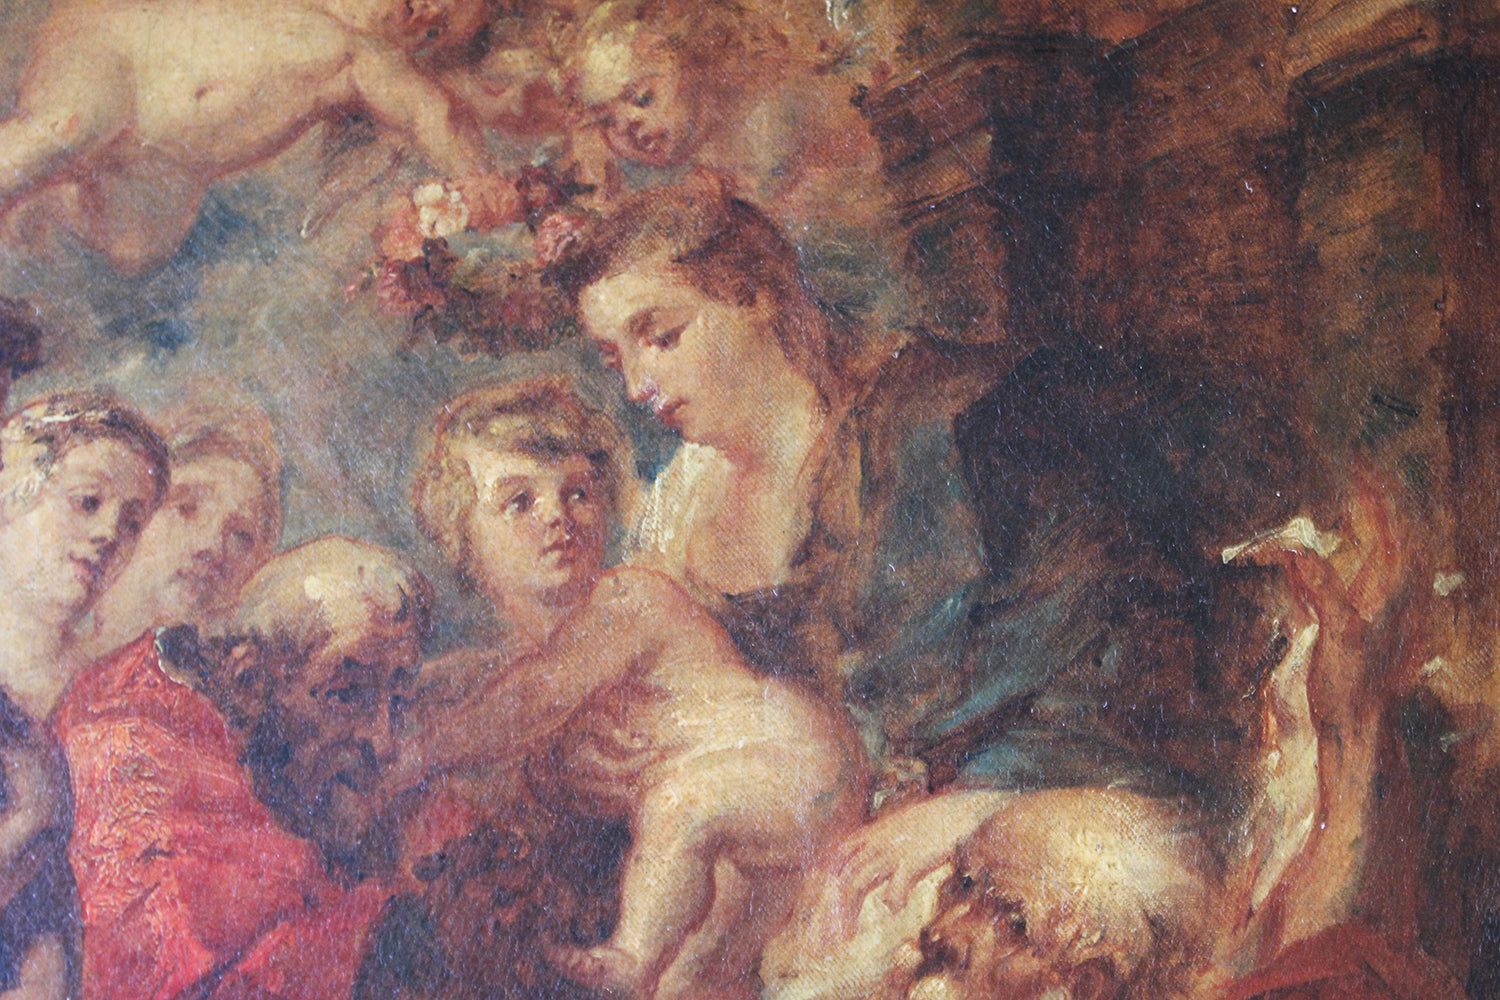 William Etty RA (1787 – 1849); The Virgin & Infant Saviour with Saints; After Rubens c.1843-46